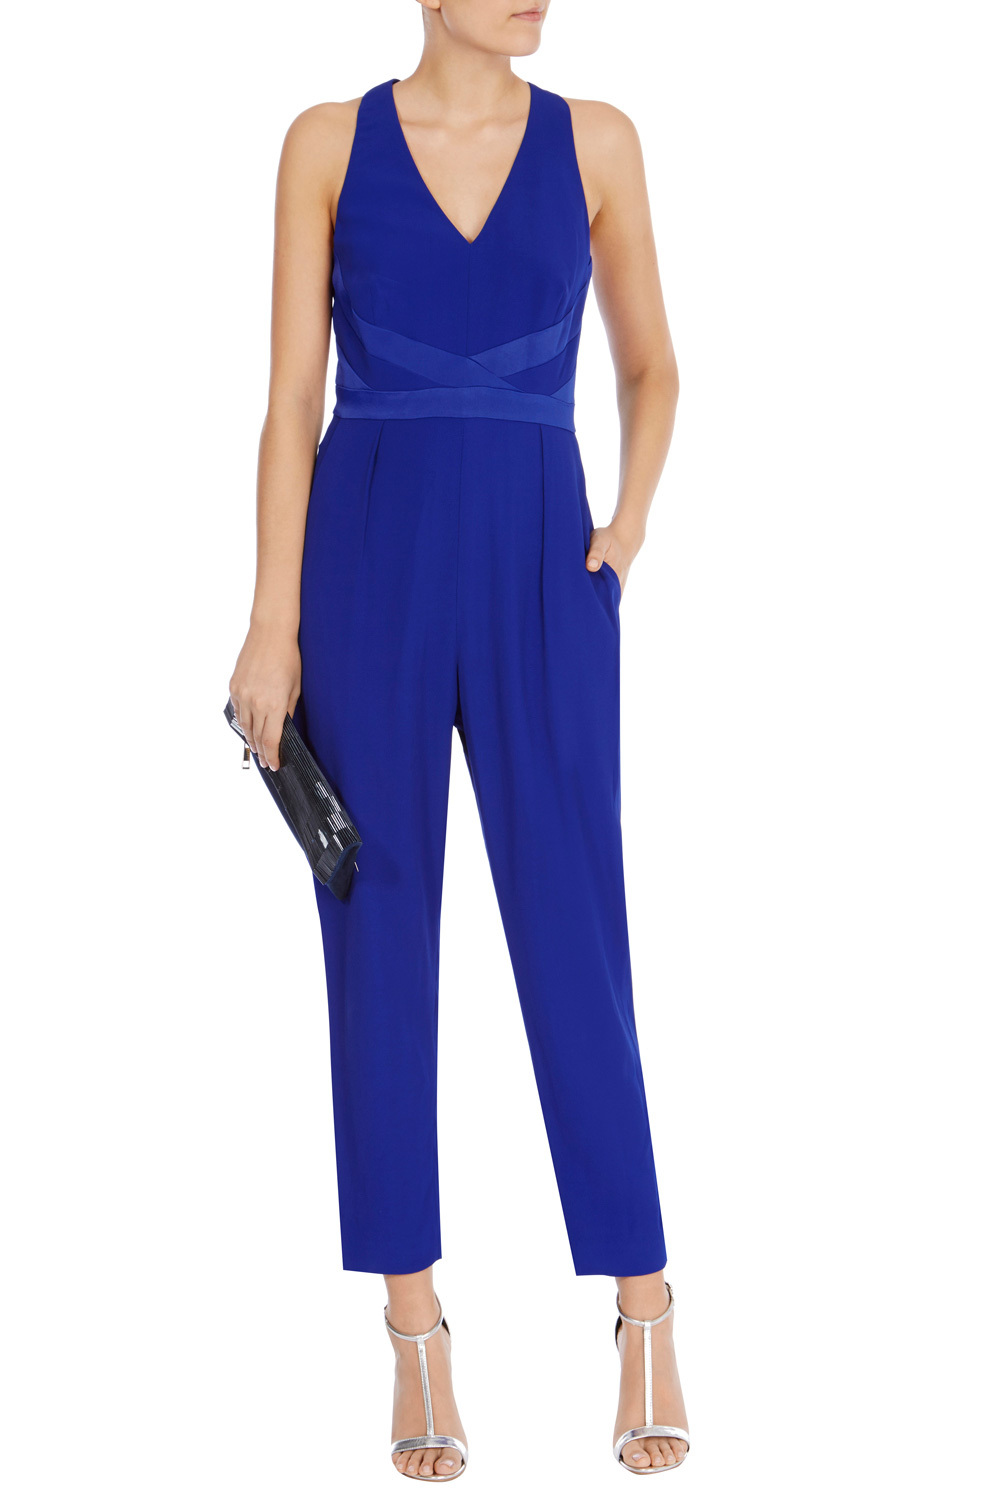 Viola Halter Neck Jumpsuit - neckline: low v-neck; fit: tailored/fitted; pattern: plain; sleeve style: sleeveless; predominant colour: royal blue; length: ankle length; fibres: viscose/rayon - 100%; occasions: occasion; hip detail: subtle/flattering hip detail; sleeve length: sleeveless; style: jumpsuit; pattern type: fabric; texture group: jersey - stretchy/drapey; season: s/s 2016; wardrobe: event; embellishment location: waist